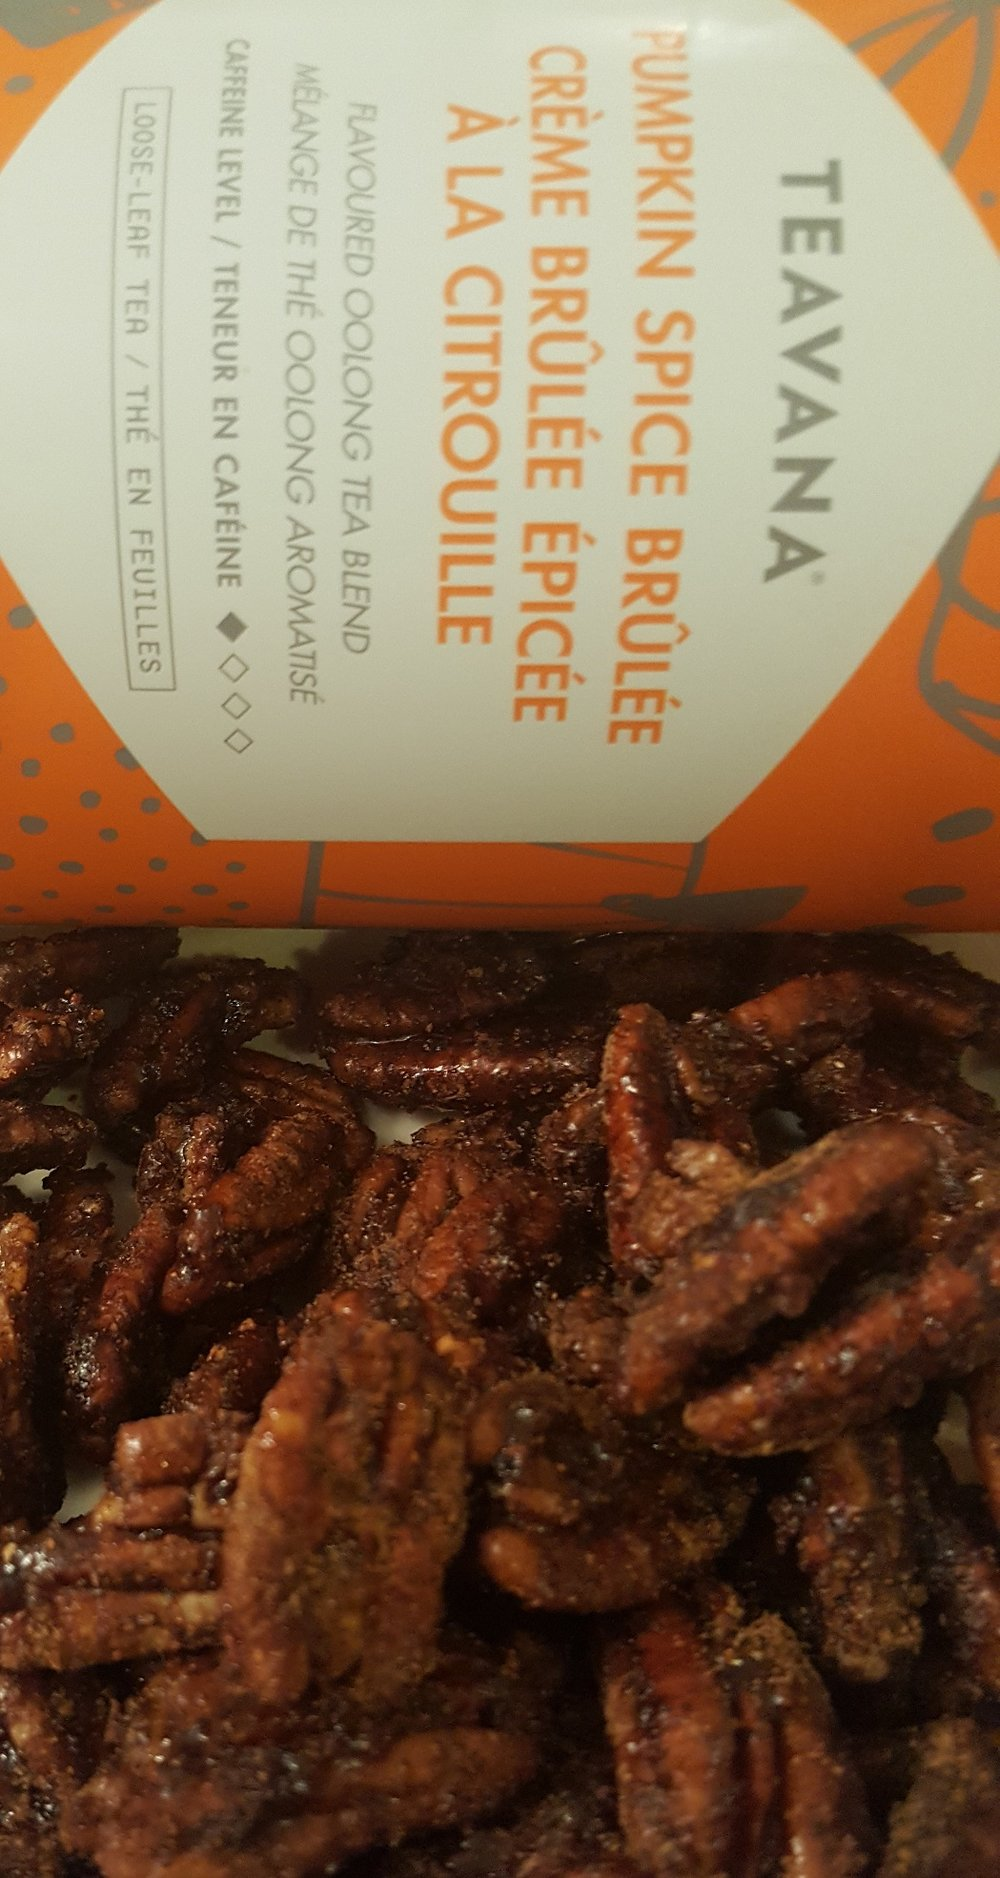 Here's my final yummy pecans: